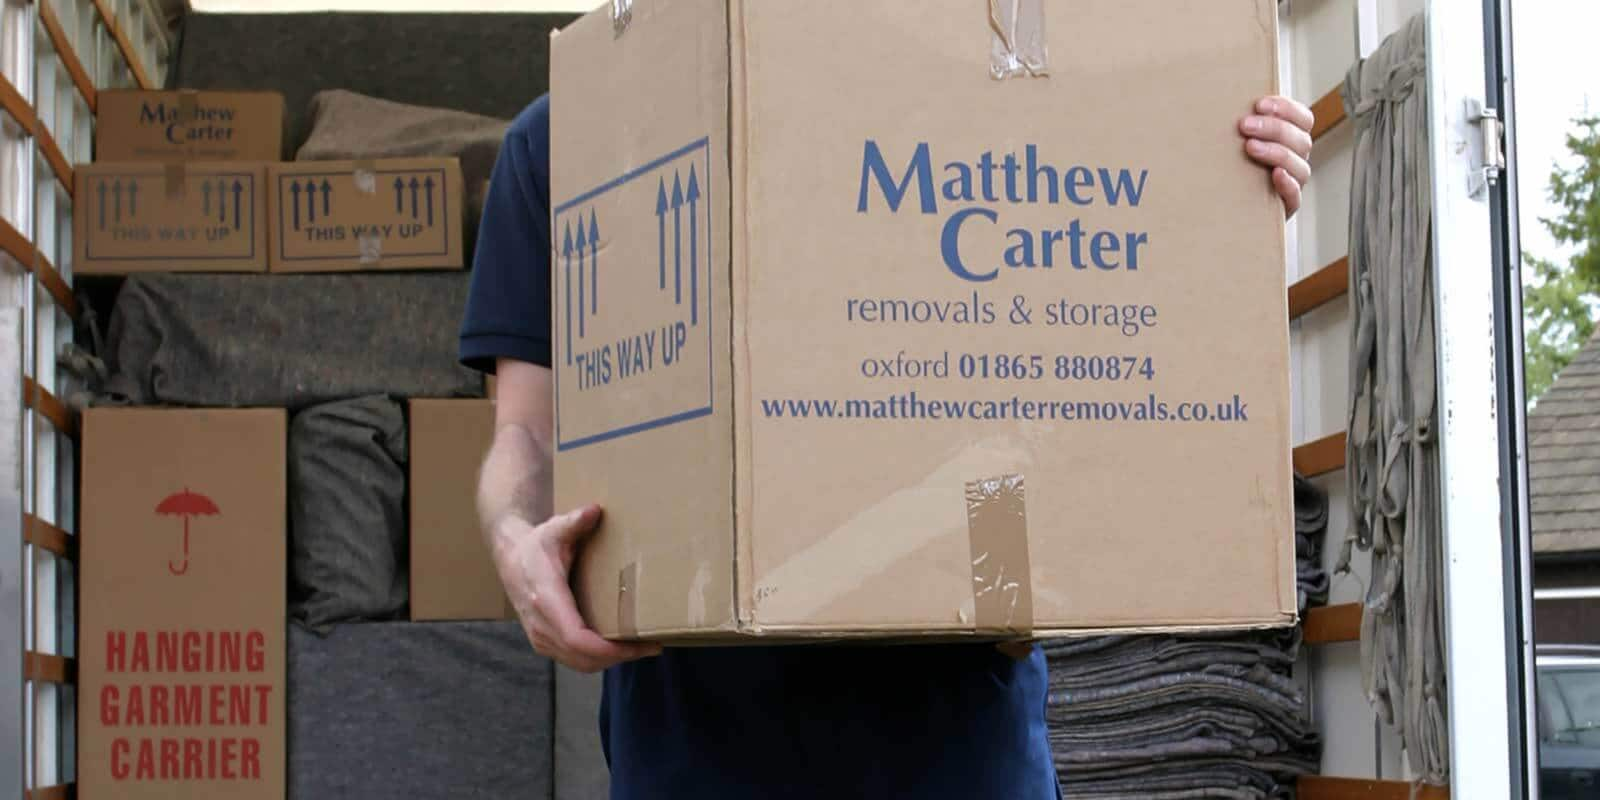 Matthew Carter Staff